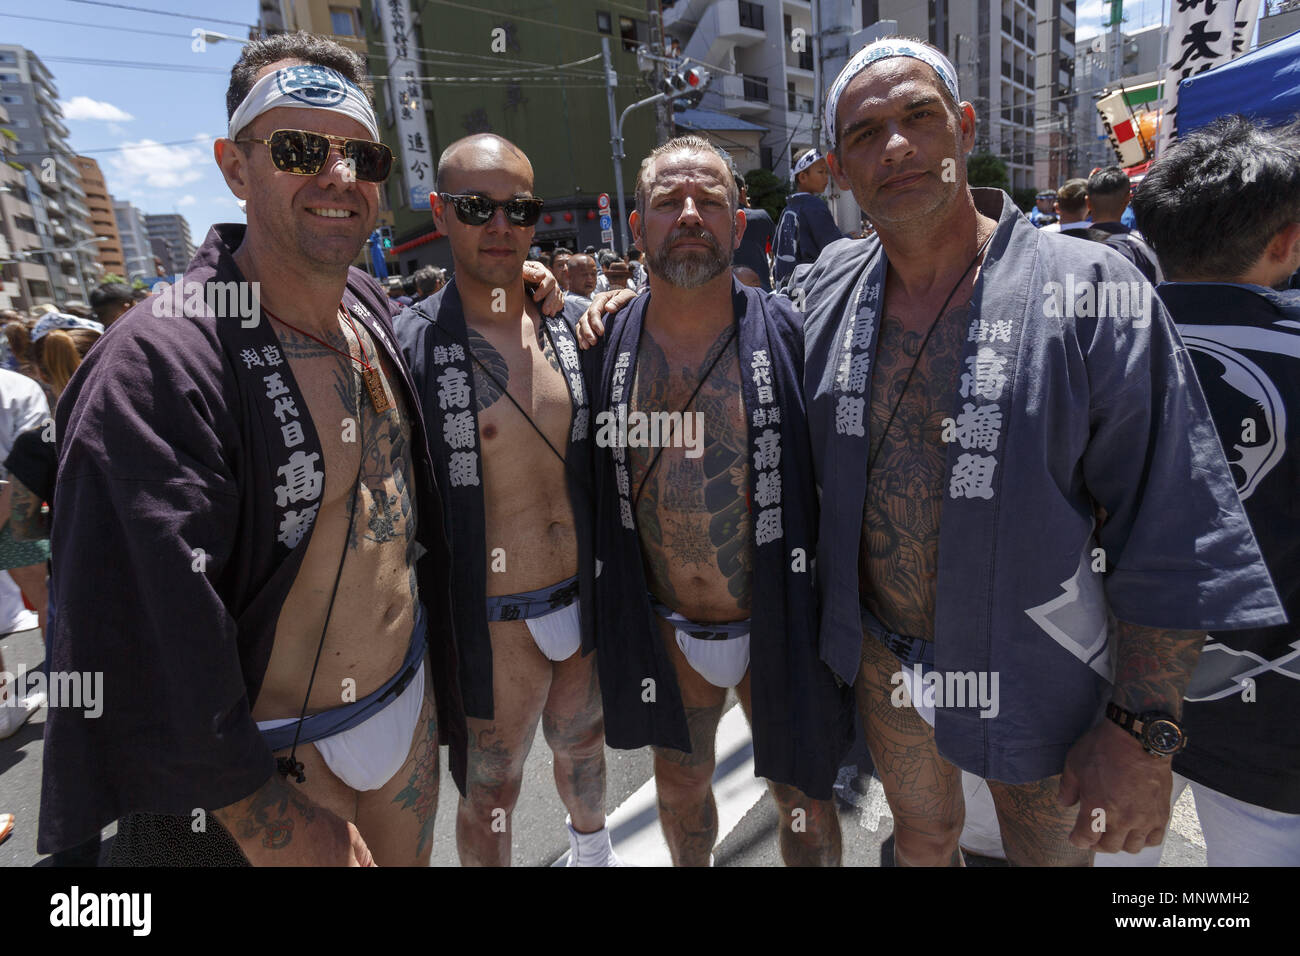 Tokyo, Japan. 20th May 2018. Participants showing their full body tattooed, pose for the cameras during the Sanja Matsuri in Asakusa district. The Sanja Matsuri is one of the largest Shinto festivals in Tokyo, and it is held in Tokyo's Asakusa district for three days around the third weekend of May. Large groups of people dressed up traditional clothes carry Mikoshi (sacred portable shrines) between the streets near to Sensoji Temple to bring blessing and fortune to the inhabitants of the neighboring community at Asakusa during the second and third day of the festival. Credit: ZUMA Press, Inc - Stock Image